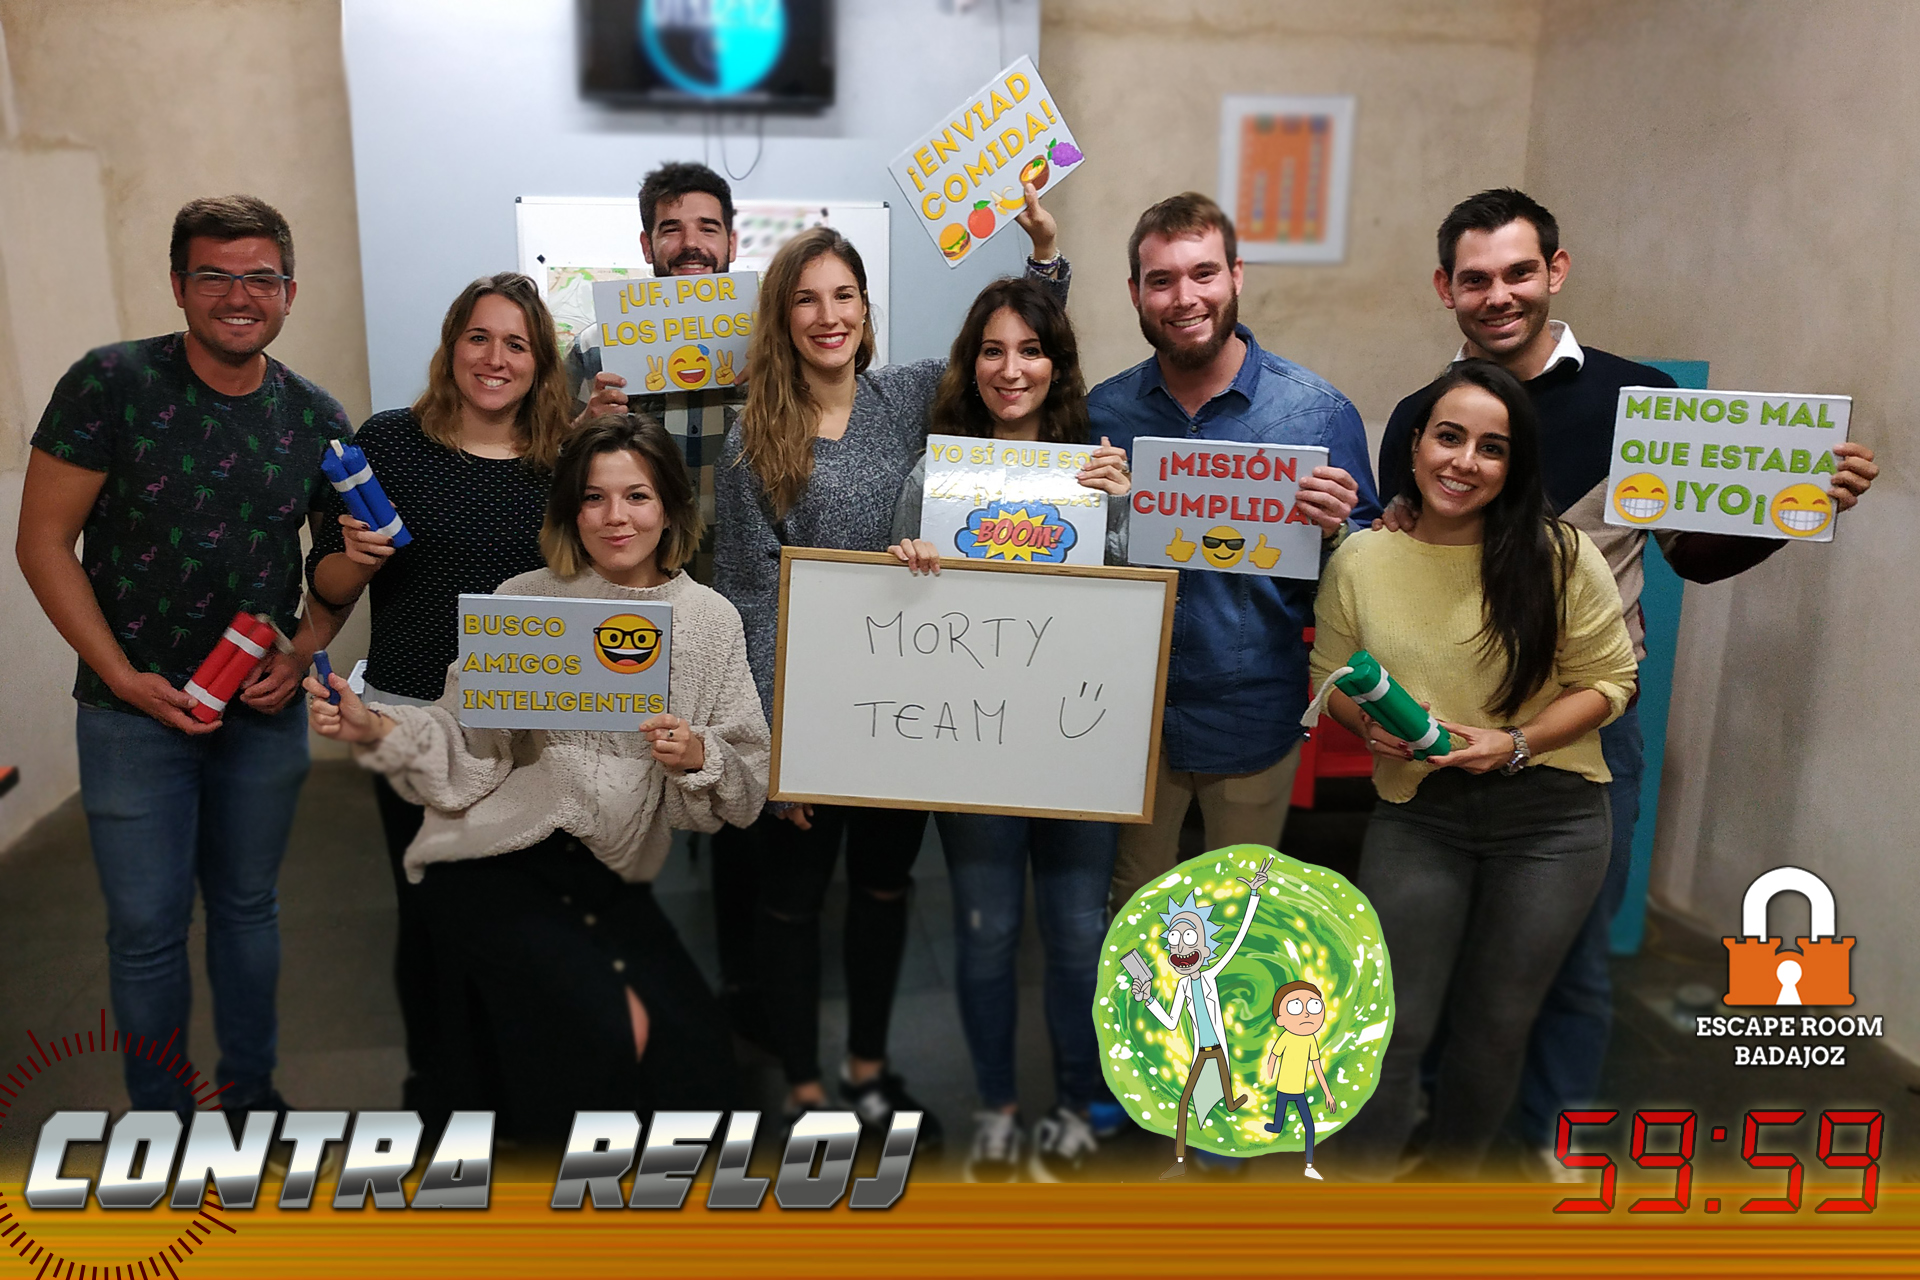 Equipo-morty-team-escape-room-badajoz